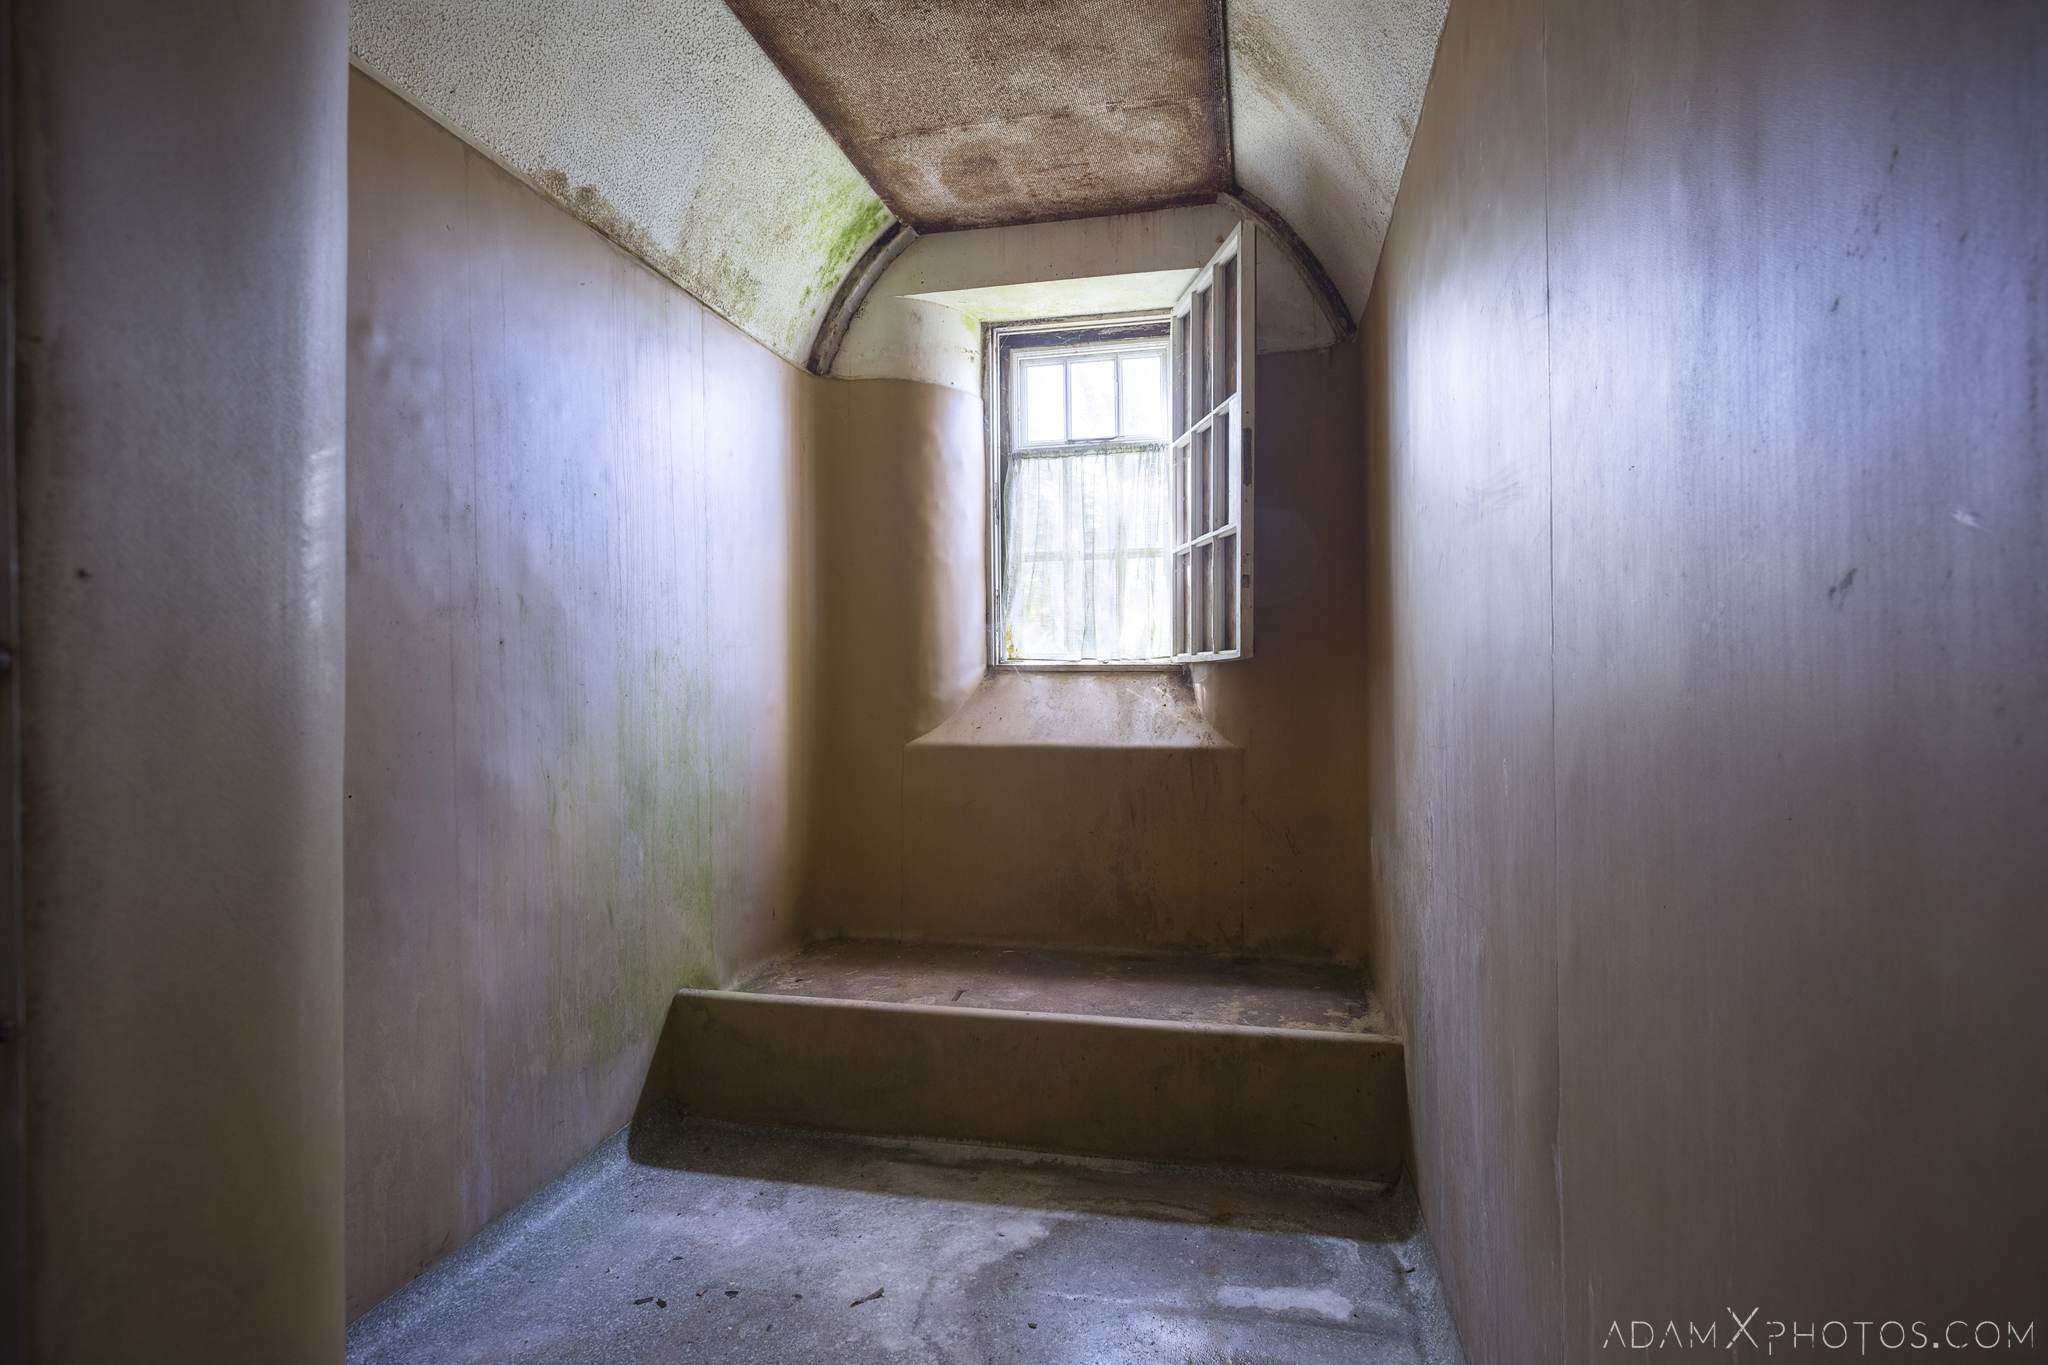 isolation cell Connacht District Lunatic Asylum St Brigid's Hospital Adam X Urbex Urban Exploration Ireland Ballinasloe Access 2017 Abandoned decay lost forgotten derelict location creepy haunting eerie